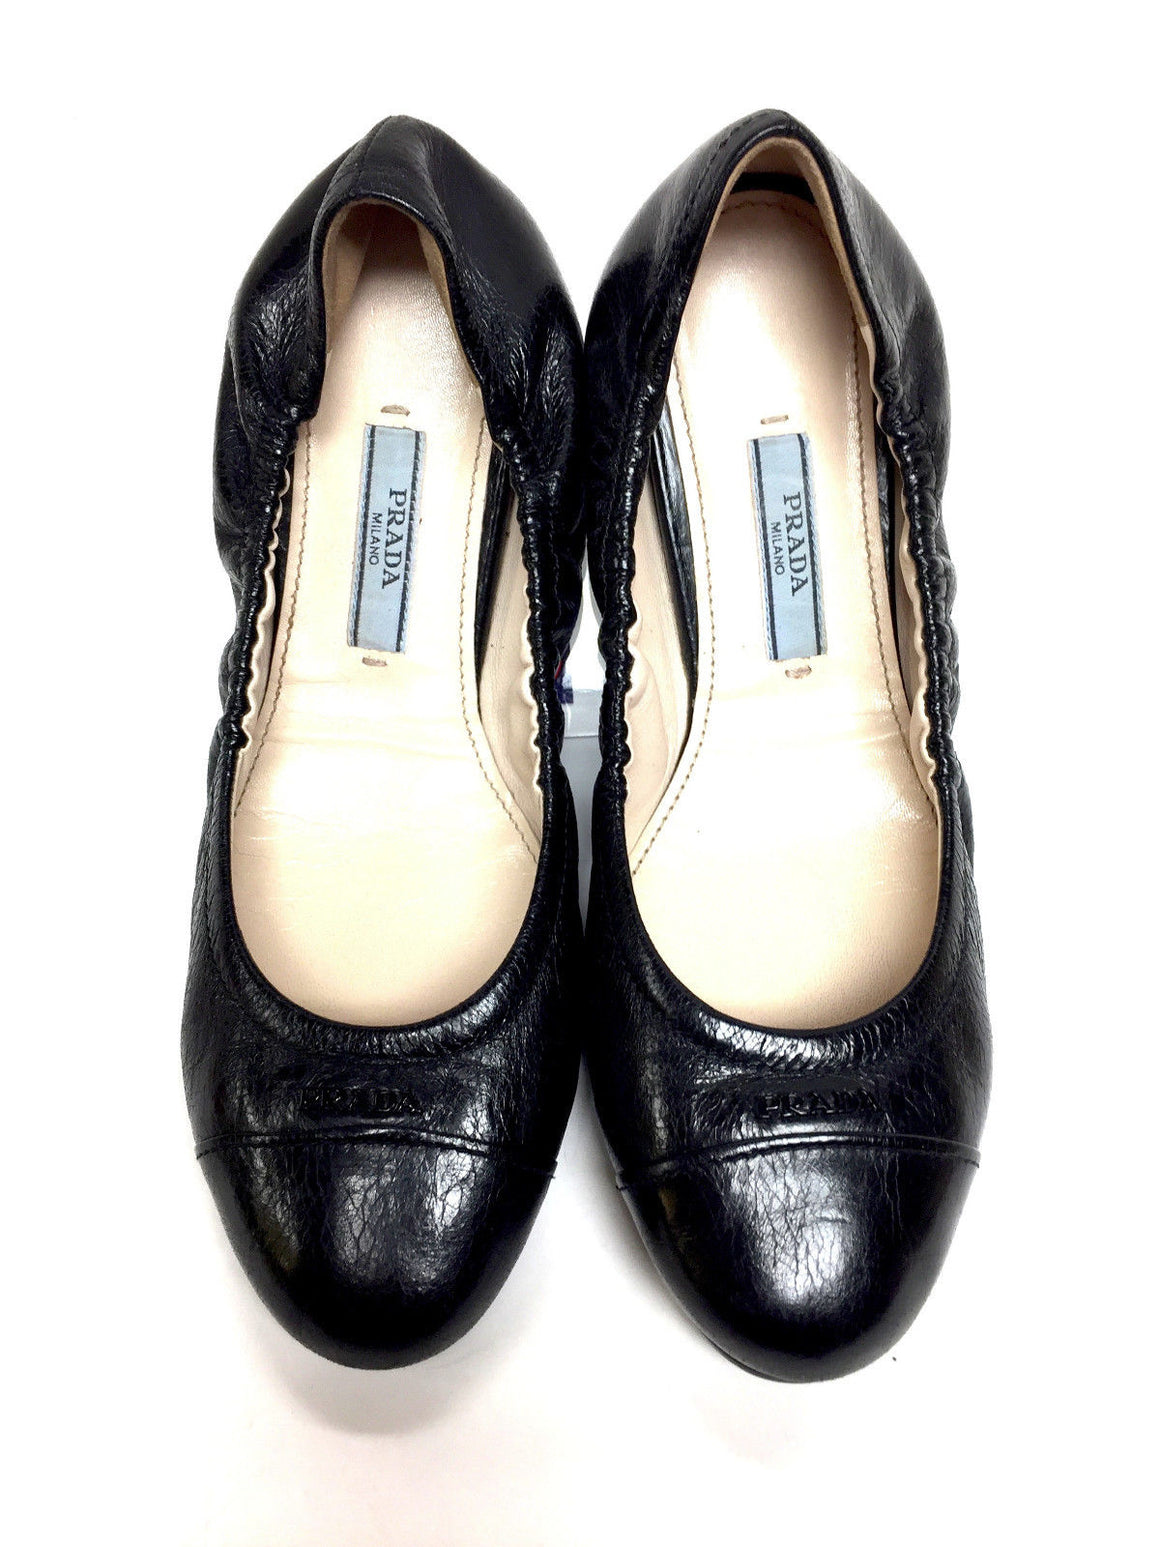 PRADA Black Crackle Leather Elastic Edge Ballet Flats Size: 5.5